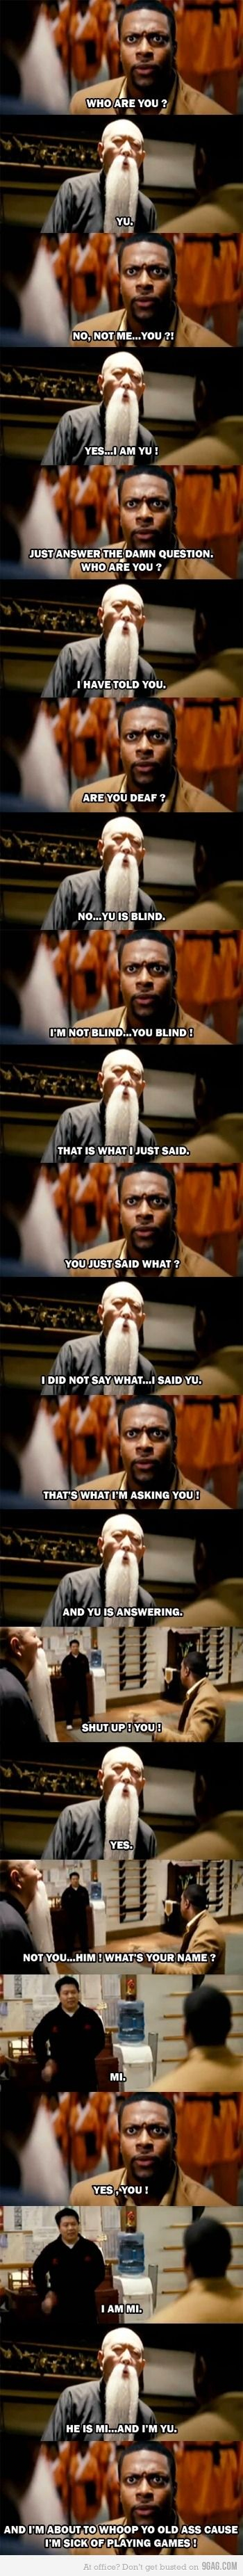 I love this scene of the movie!!! Hahahaha i laugh to much with this every time I see the movie